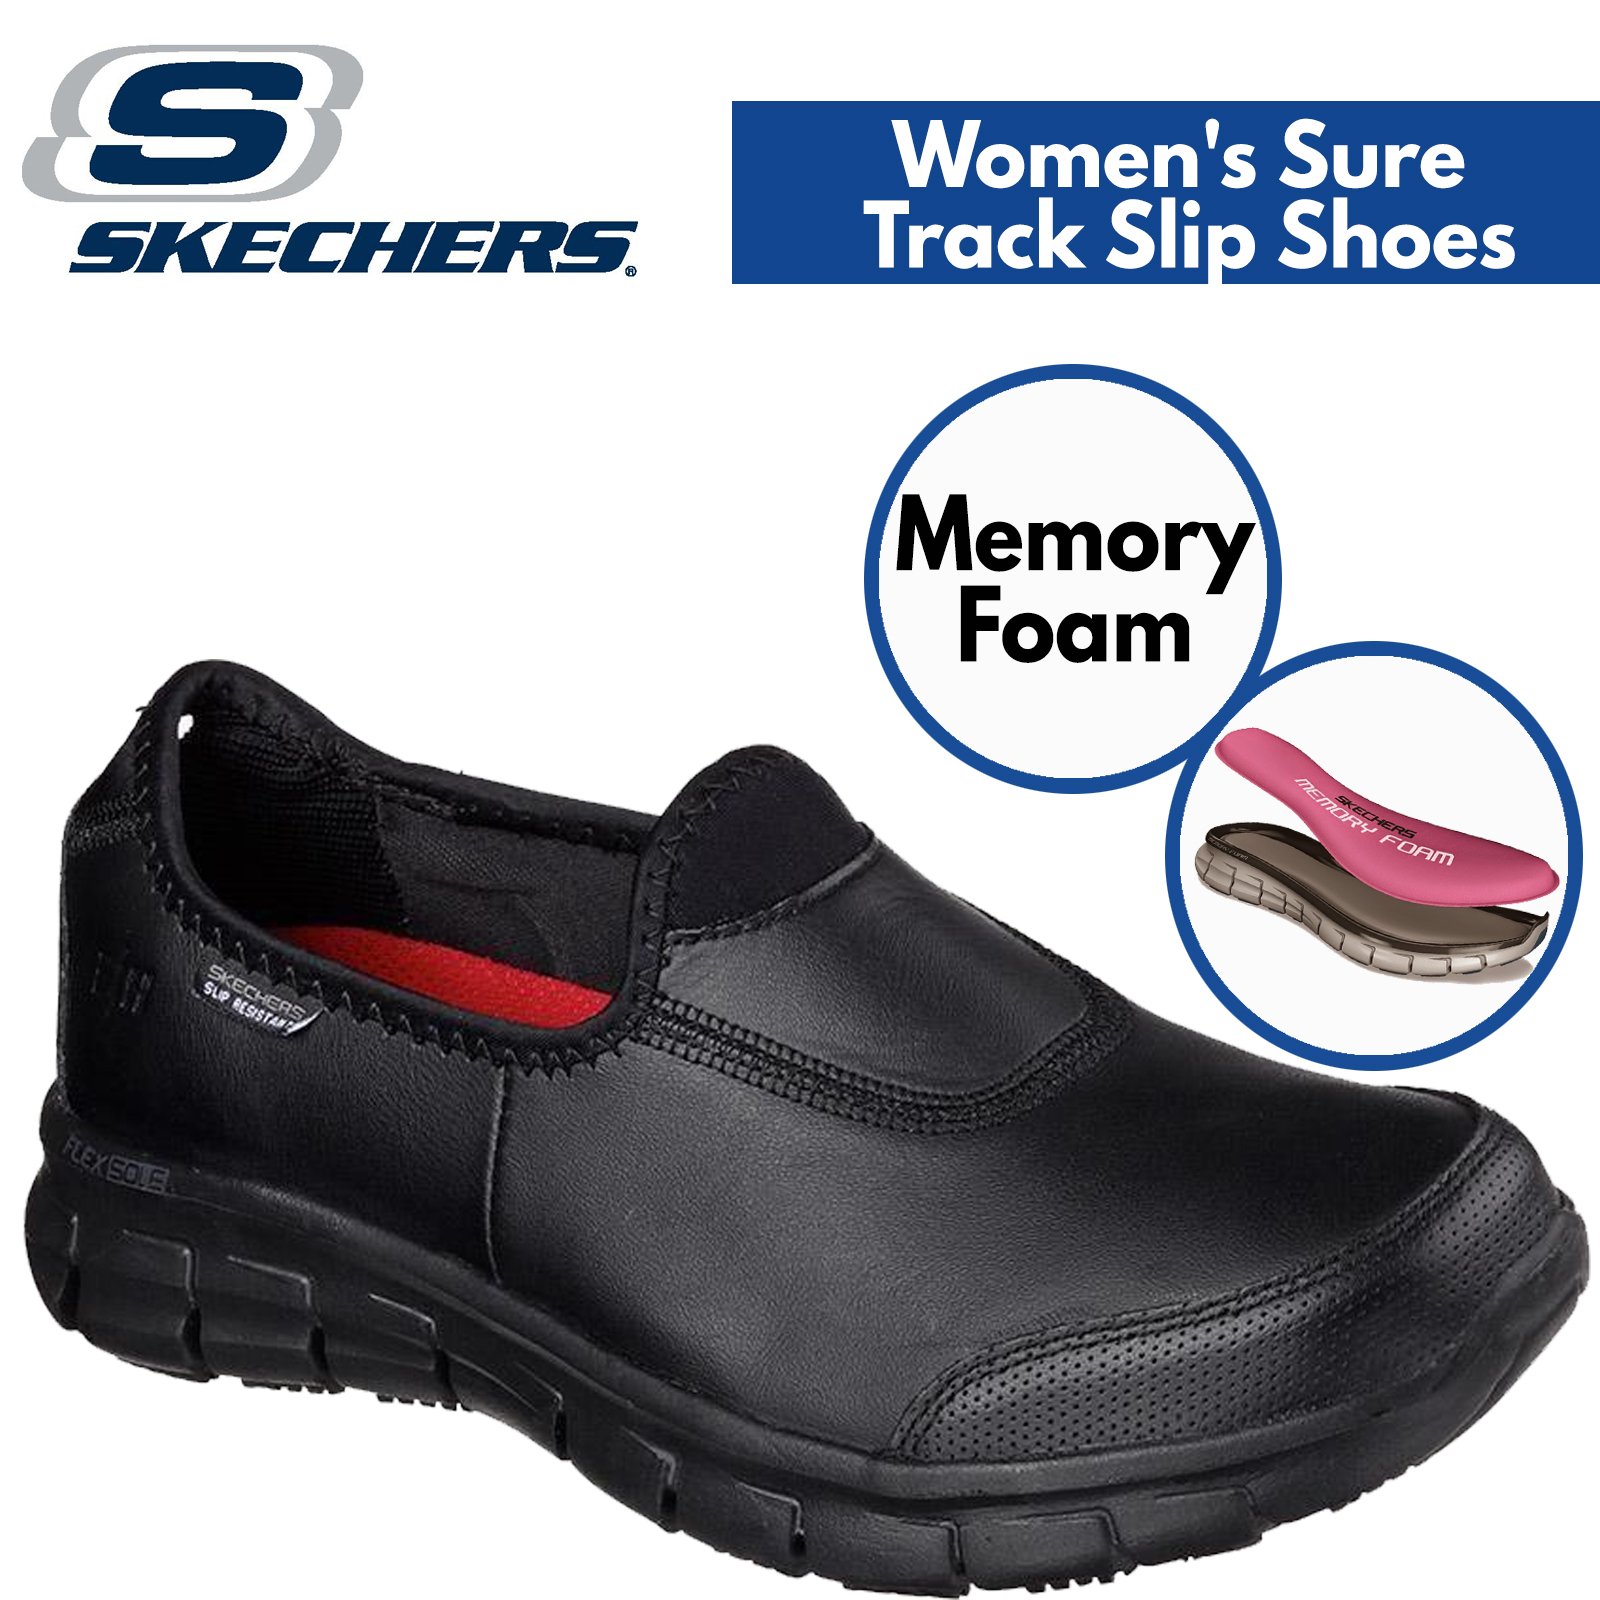 3110d16a7d79e Skechers Women's Sure Track Slip Resistant Leather Work Shoes Memory Foam -  Black